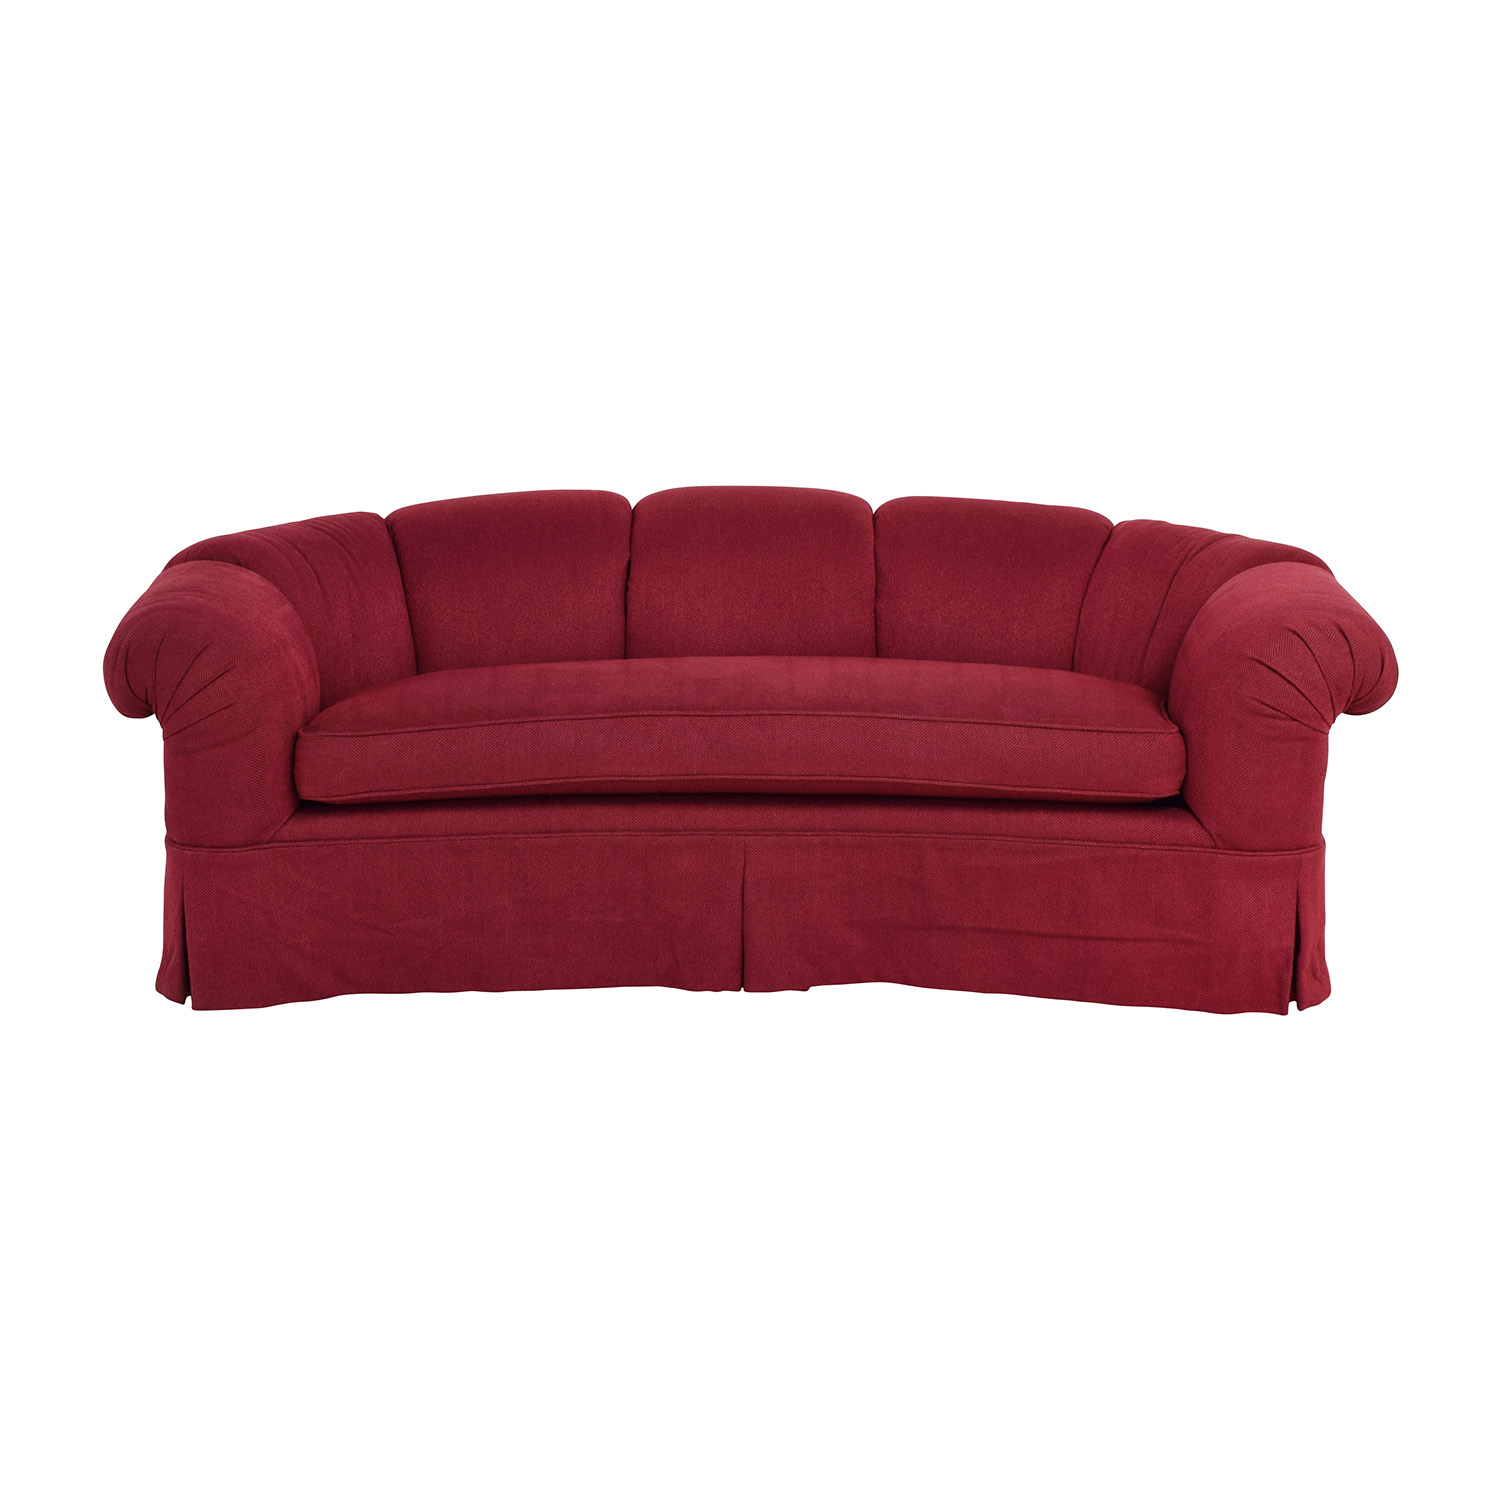 Baker Custom Burgundy Curved Couch / Classic Sofas